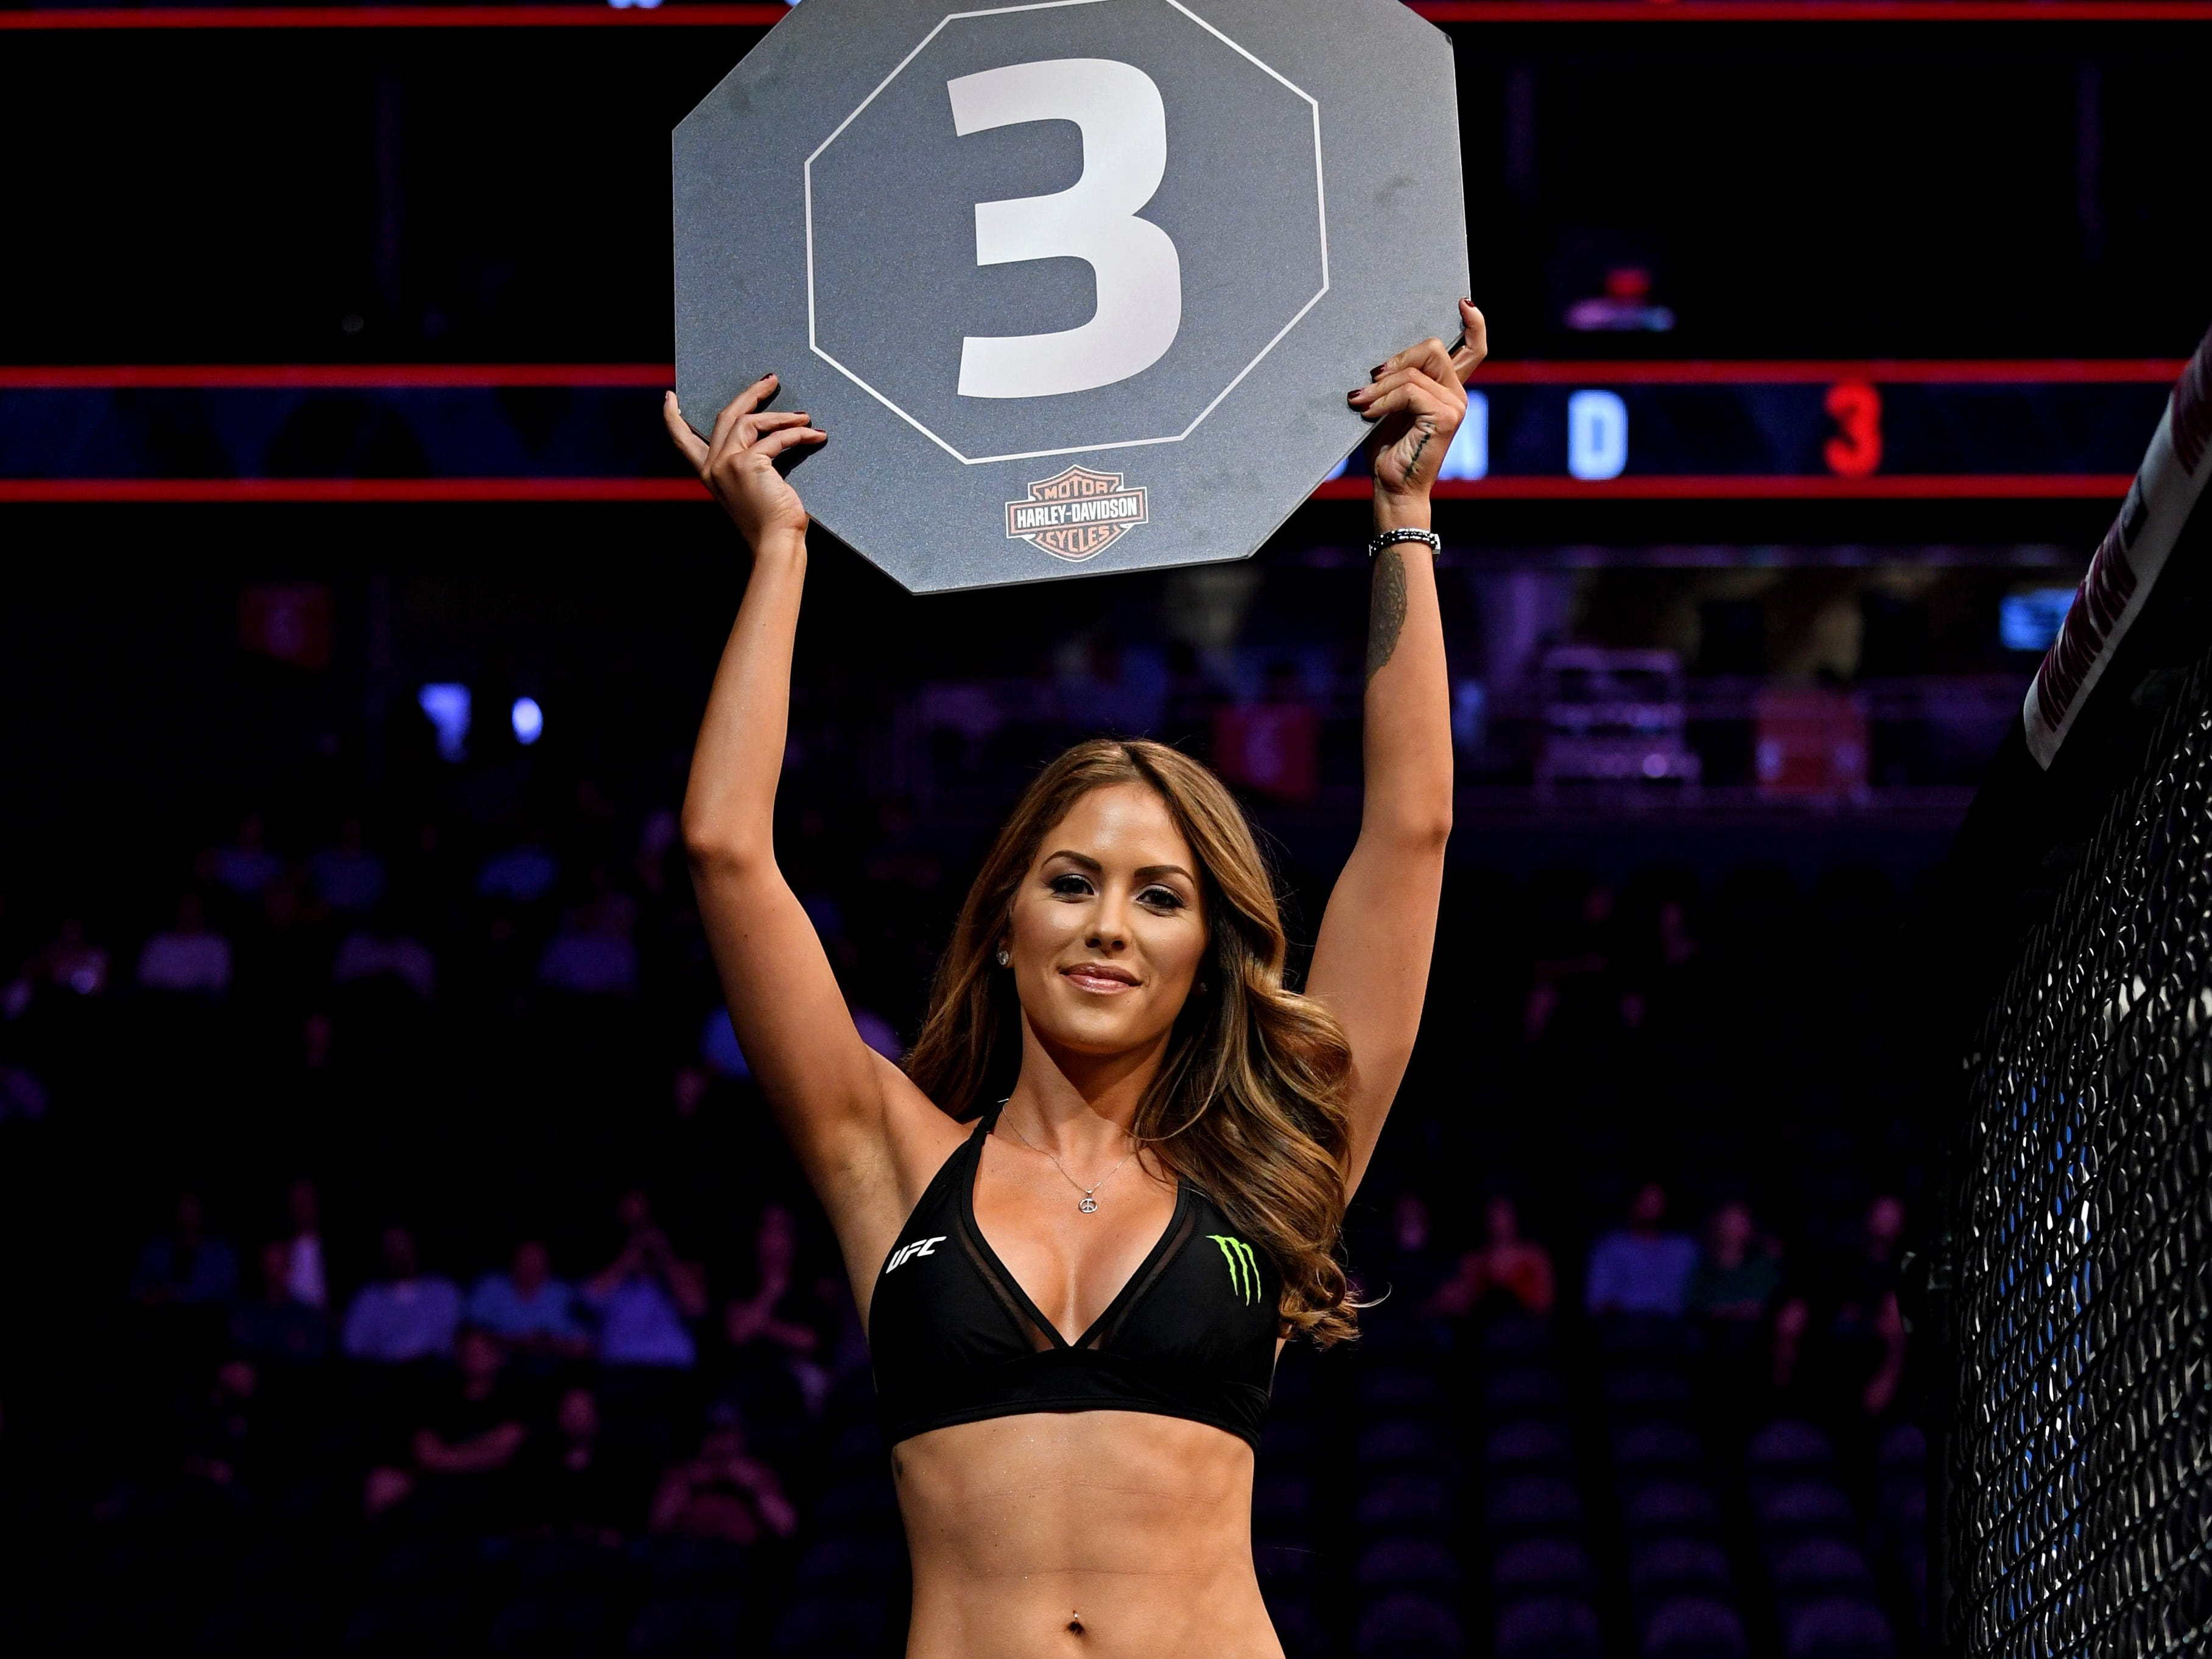 UFC octagon girl Brittany Palmer announces the third round of the Holtzman-Patrick fight.